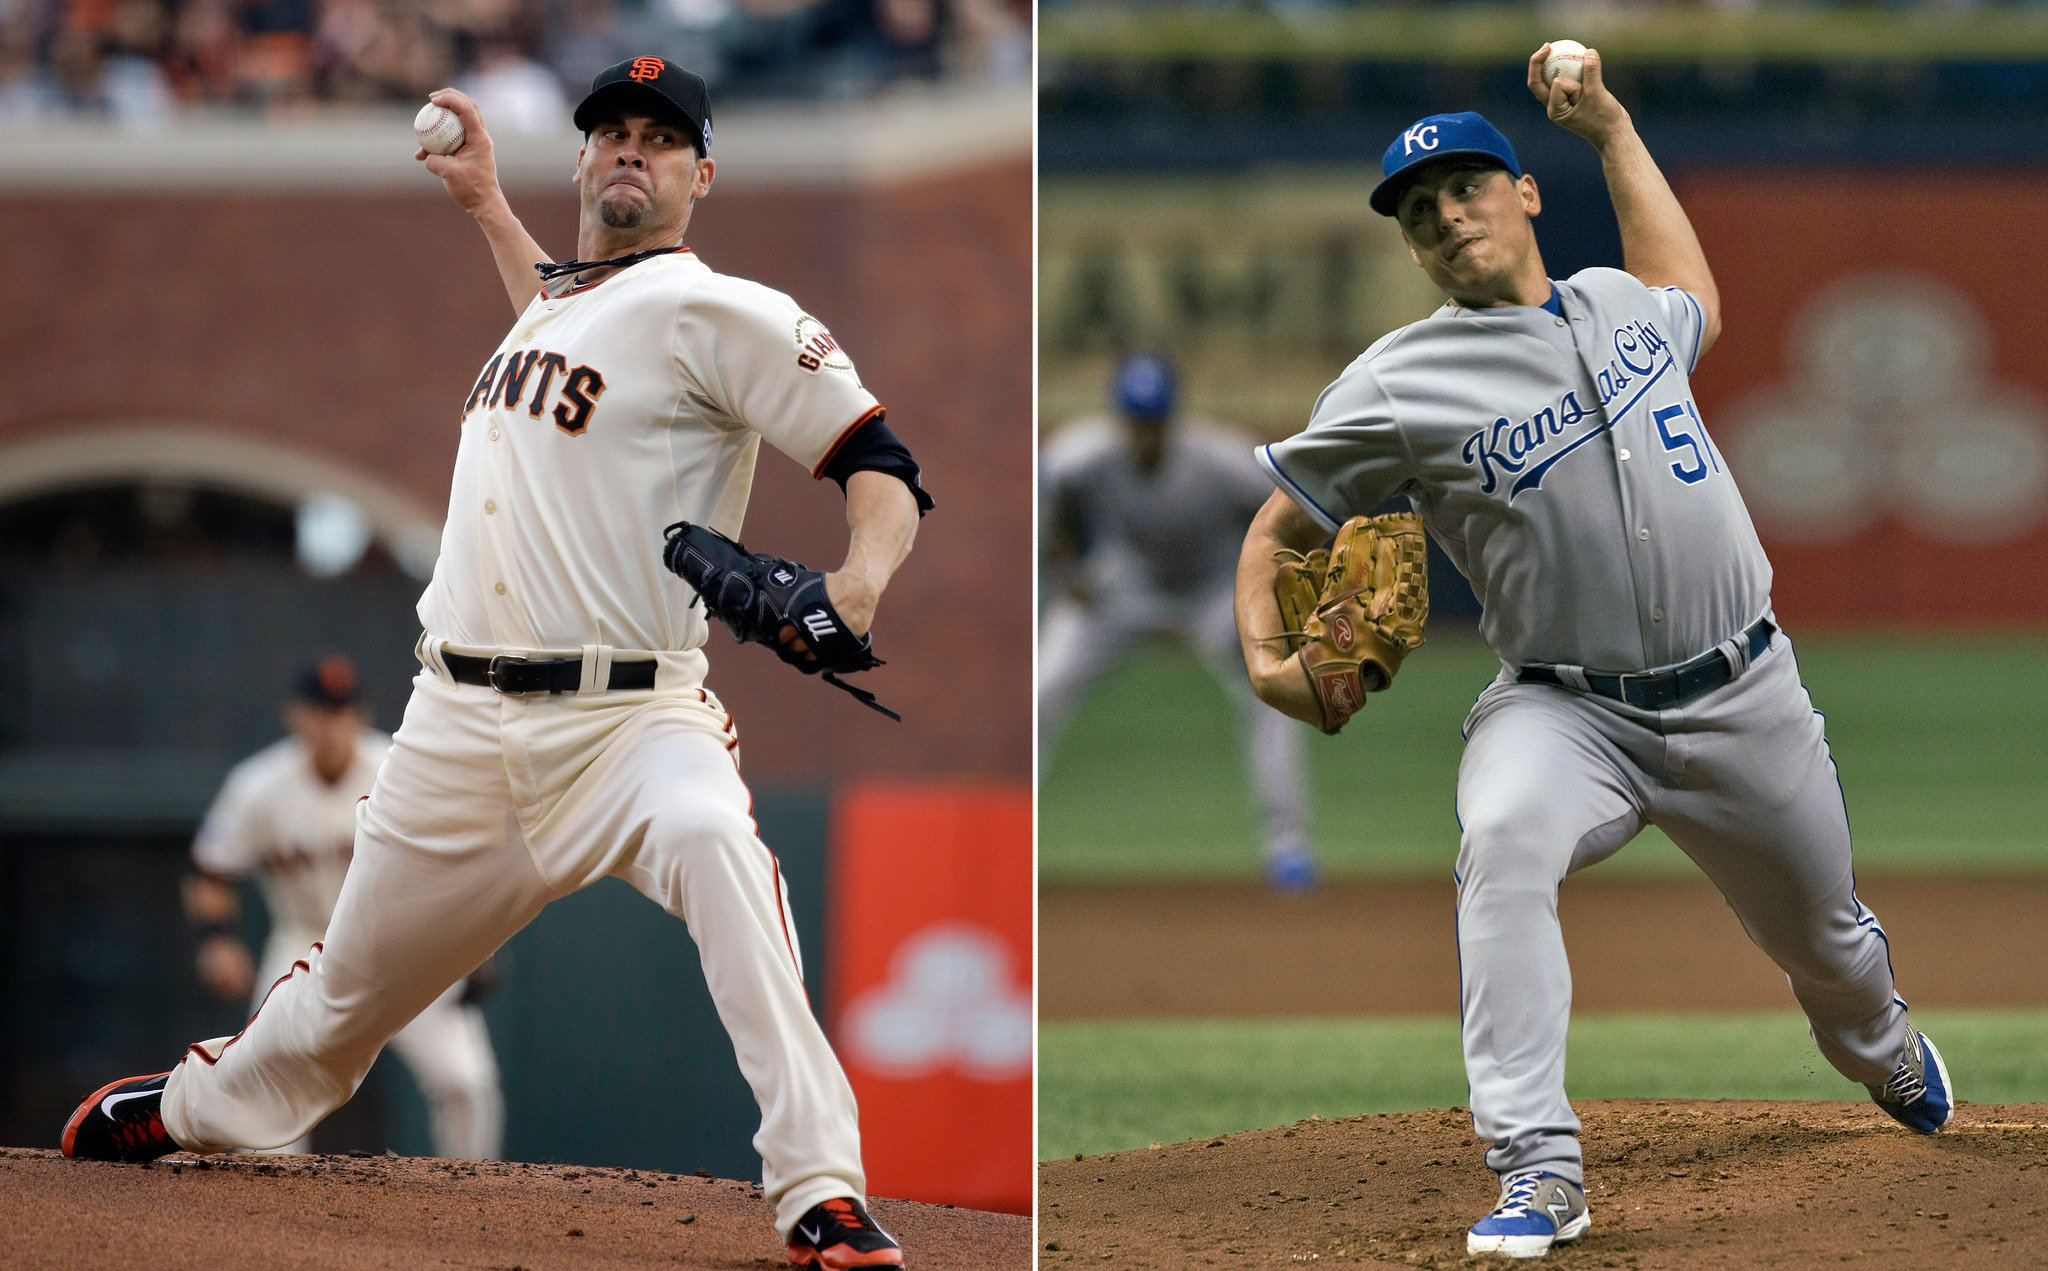 World Series 2014: Royals' Vargas to take on Giants' Vogelsong in Game 4 in San Francisco